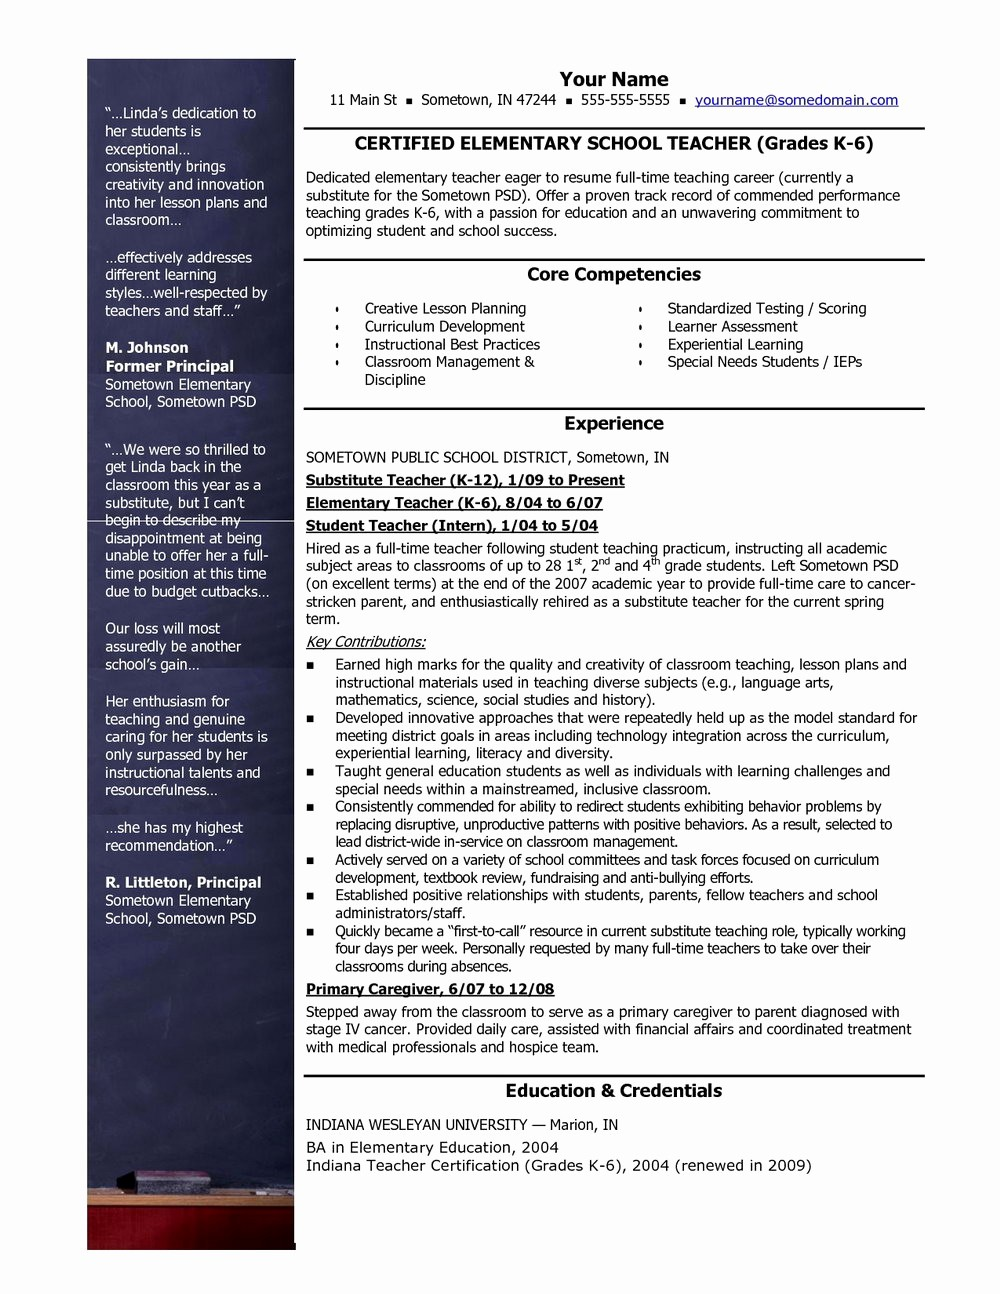 Resume Free Templates to Download Lovely Teacher Resume Template Free Download Resumes 400